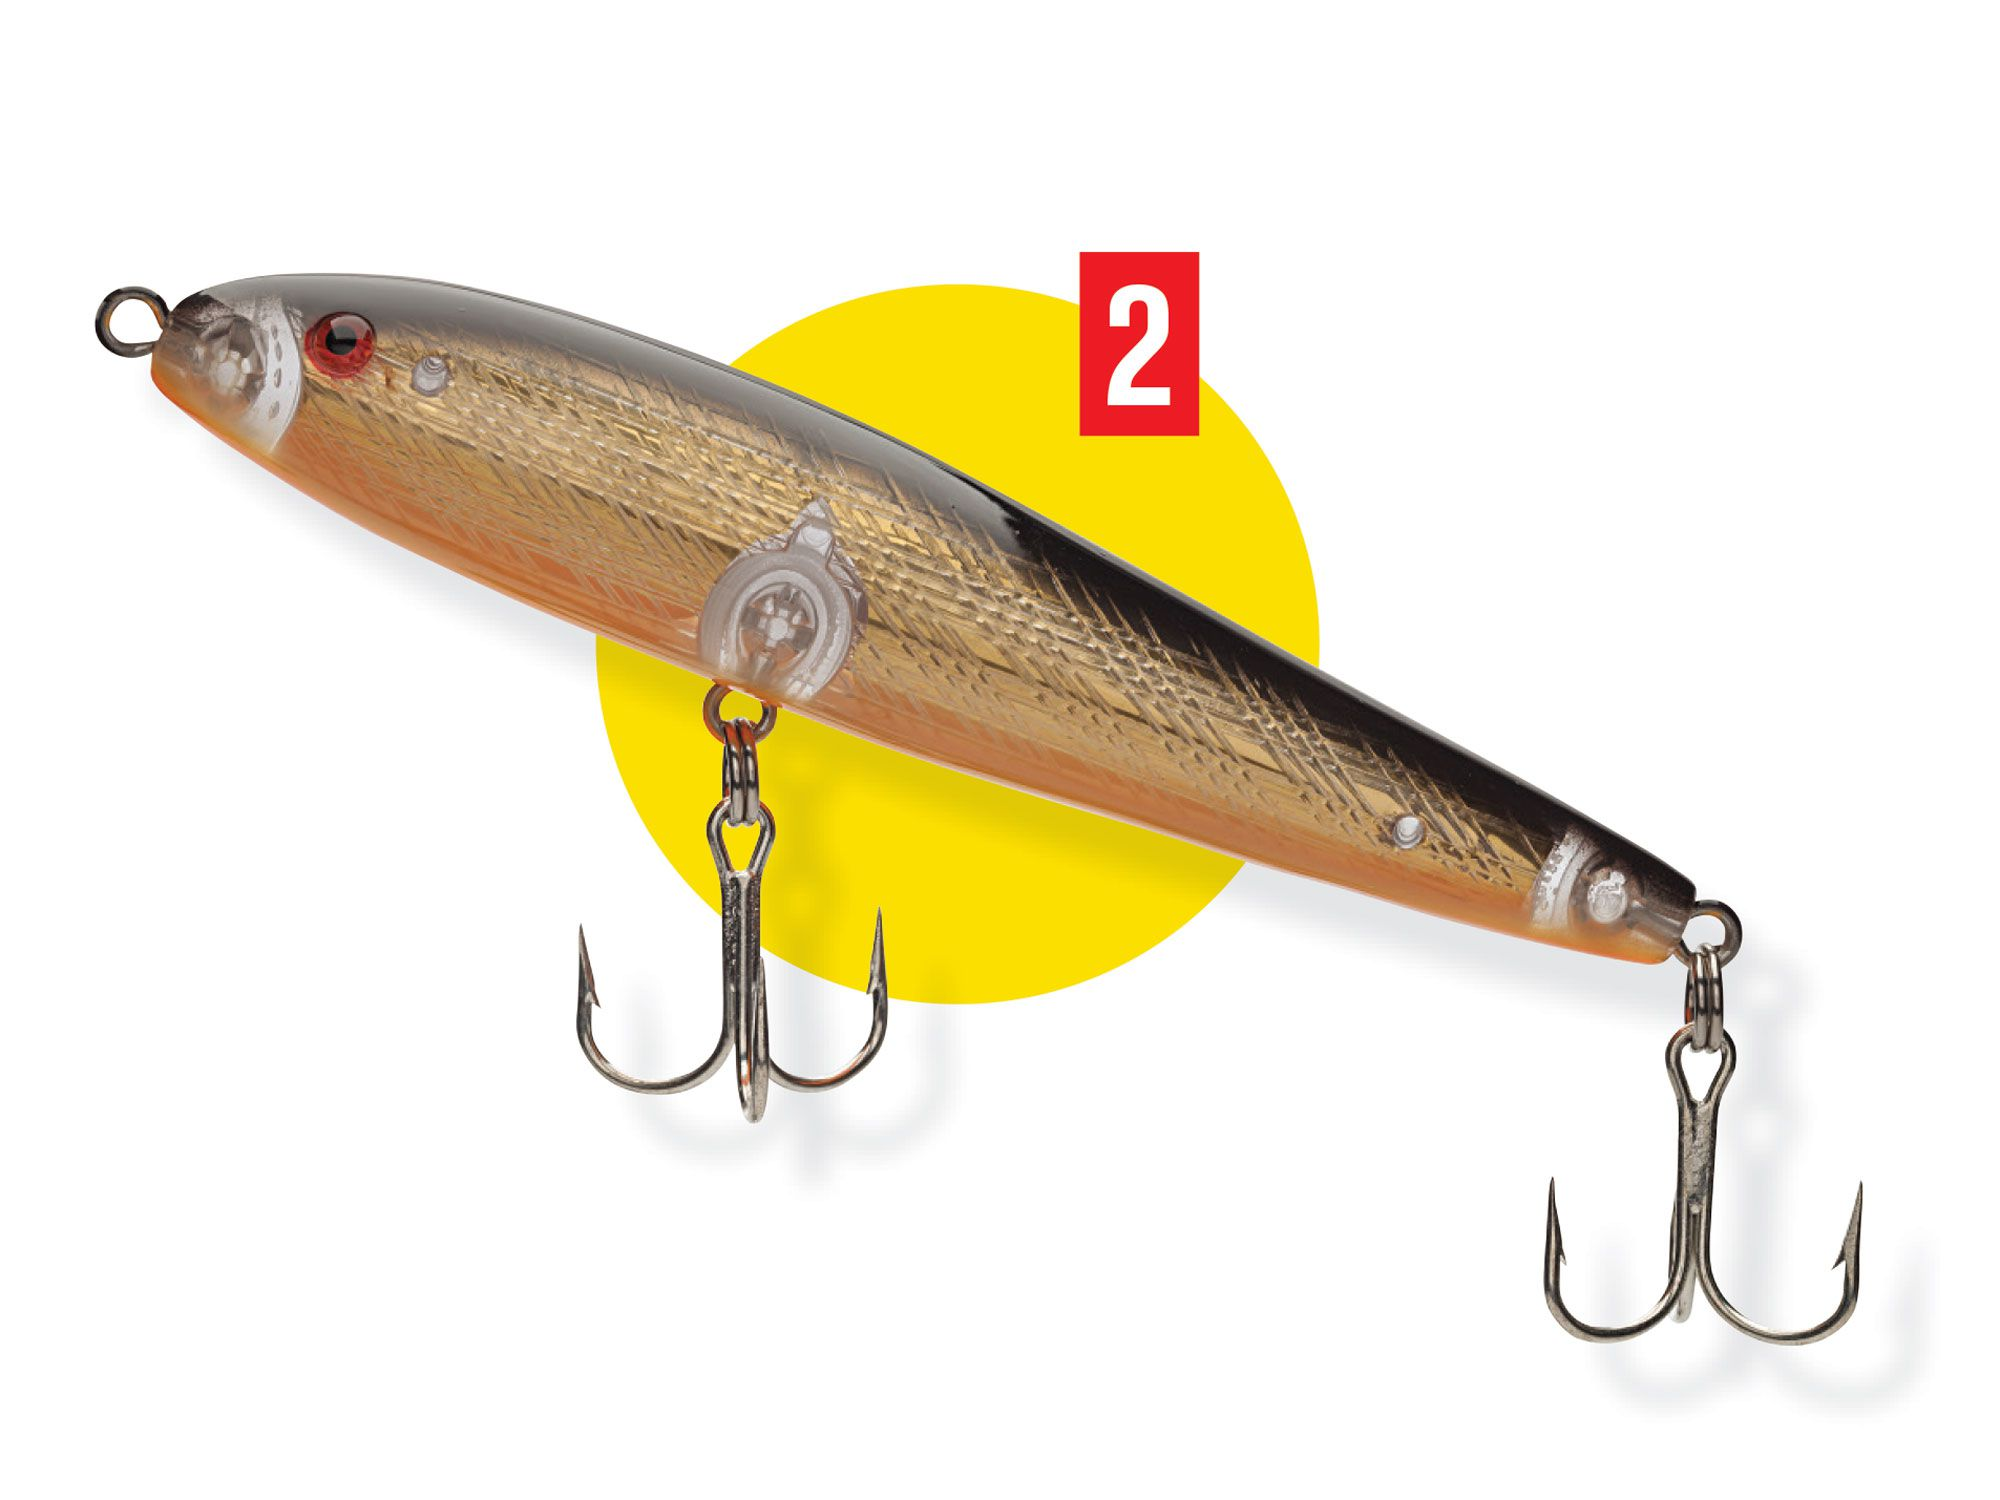 10 Best Redfish Lures, Artificial Baits for Redfish | Salt